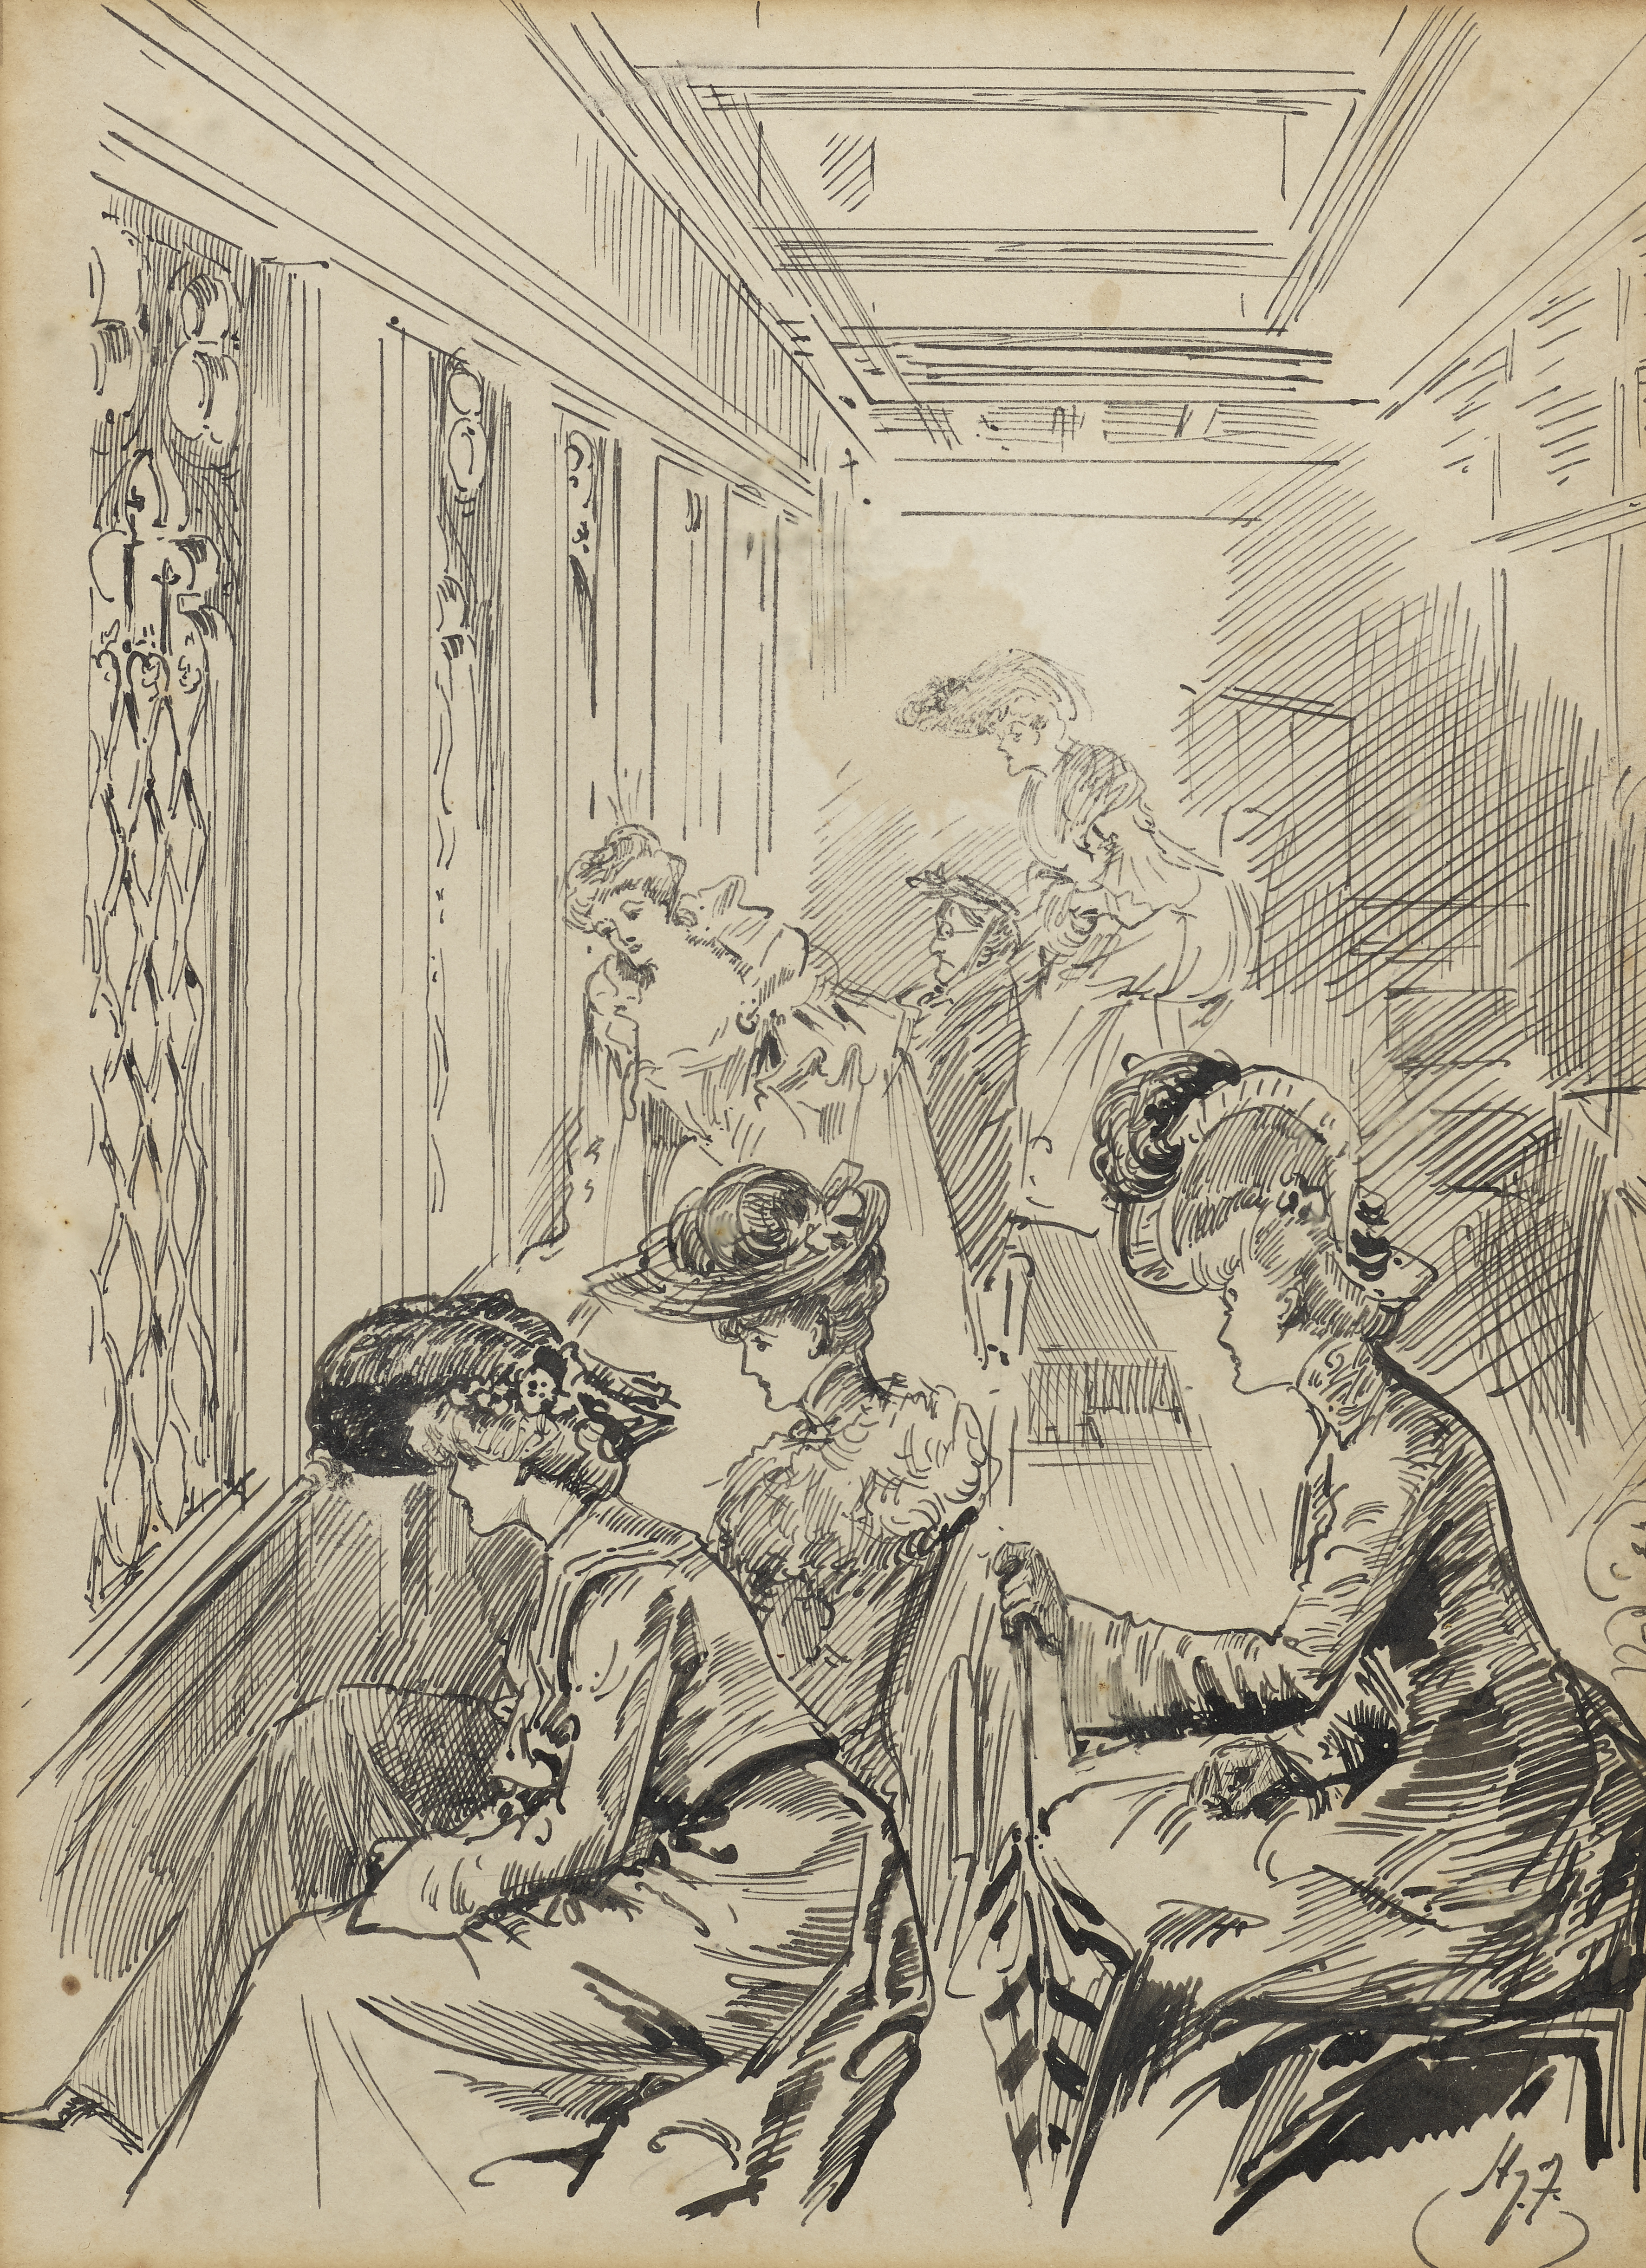 A View of the Ladies' Gallery By Harry Furniss, 1906